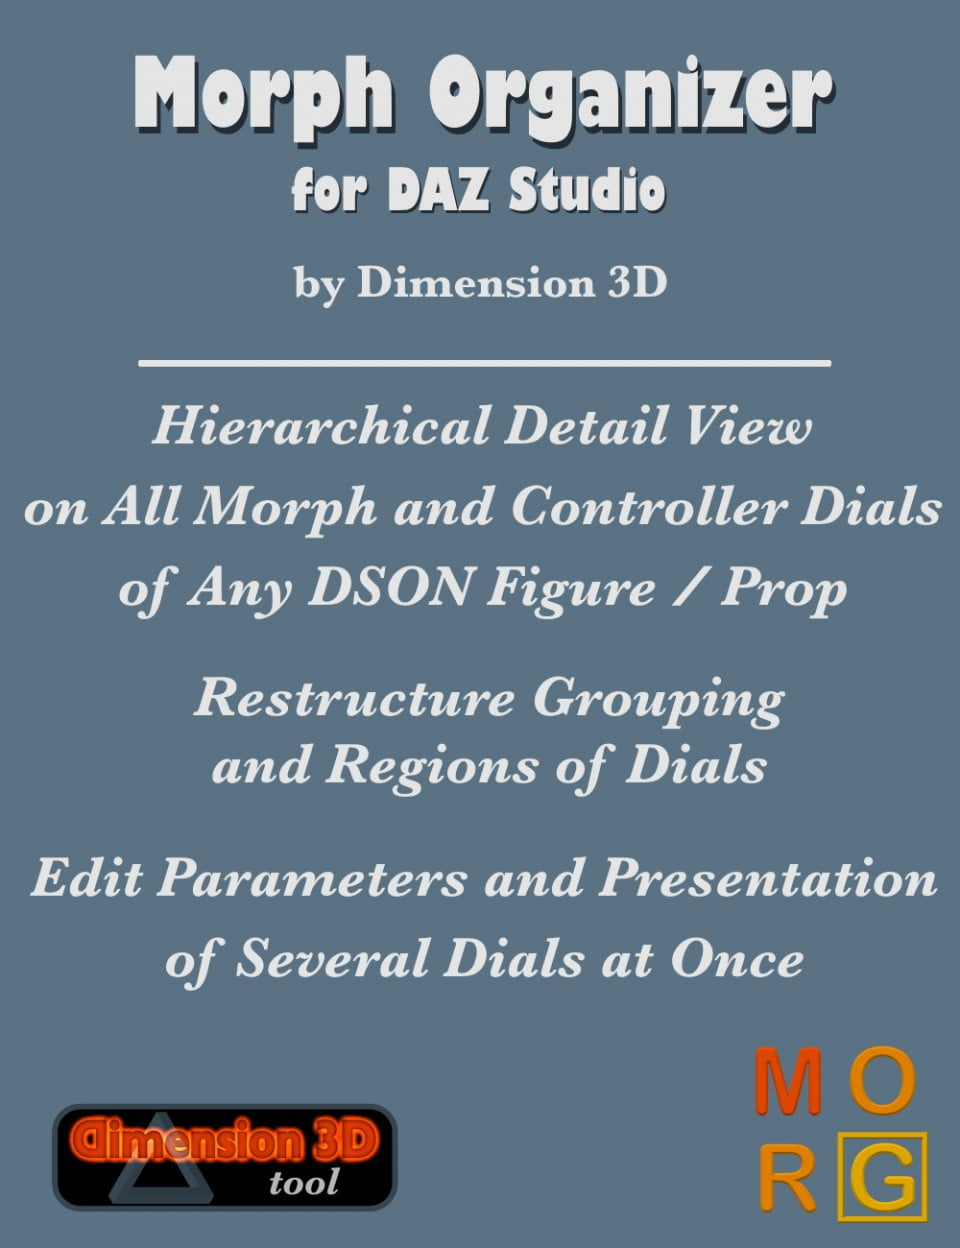 Morph Organizer for DAZ Studio